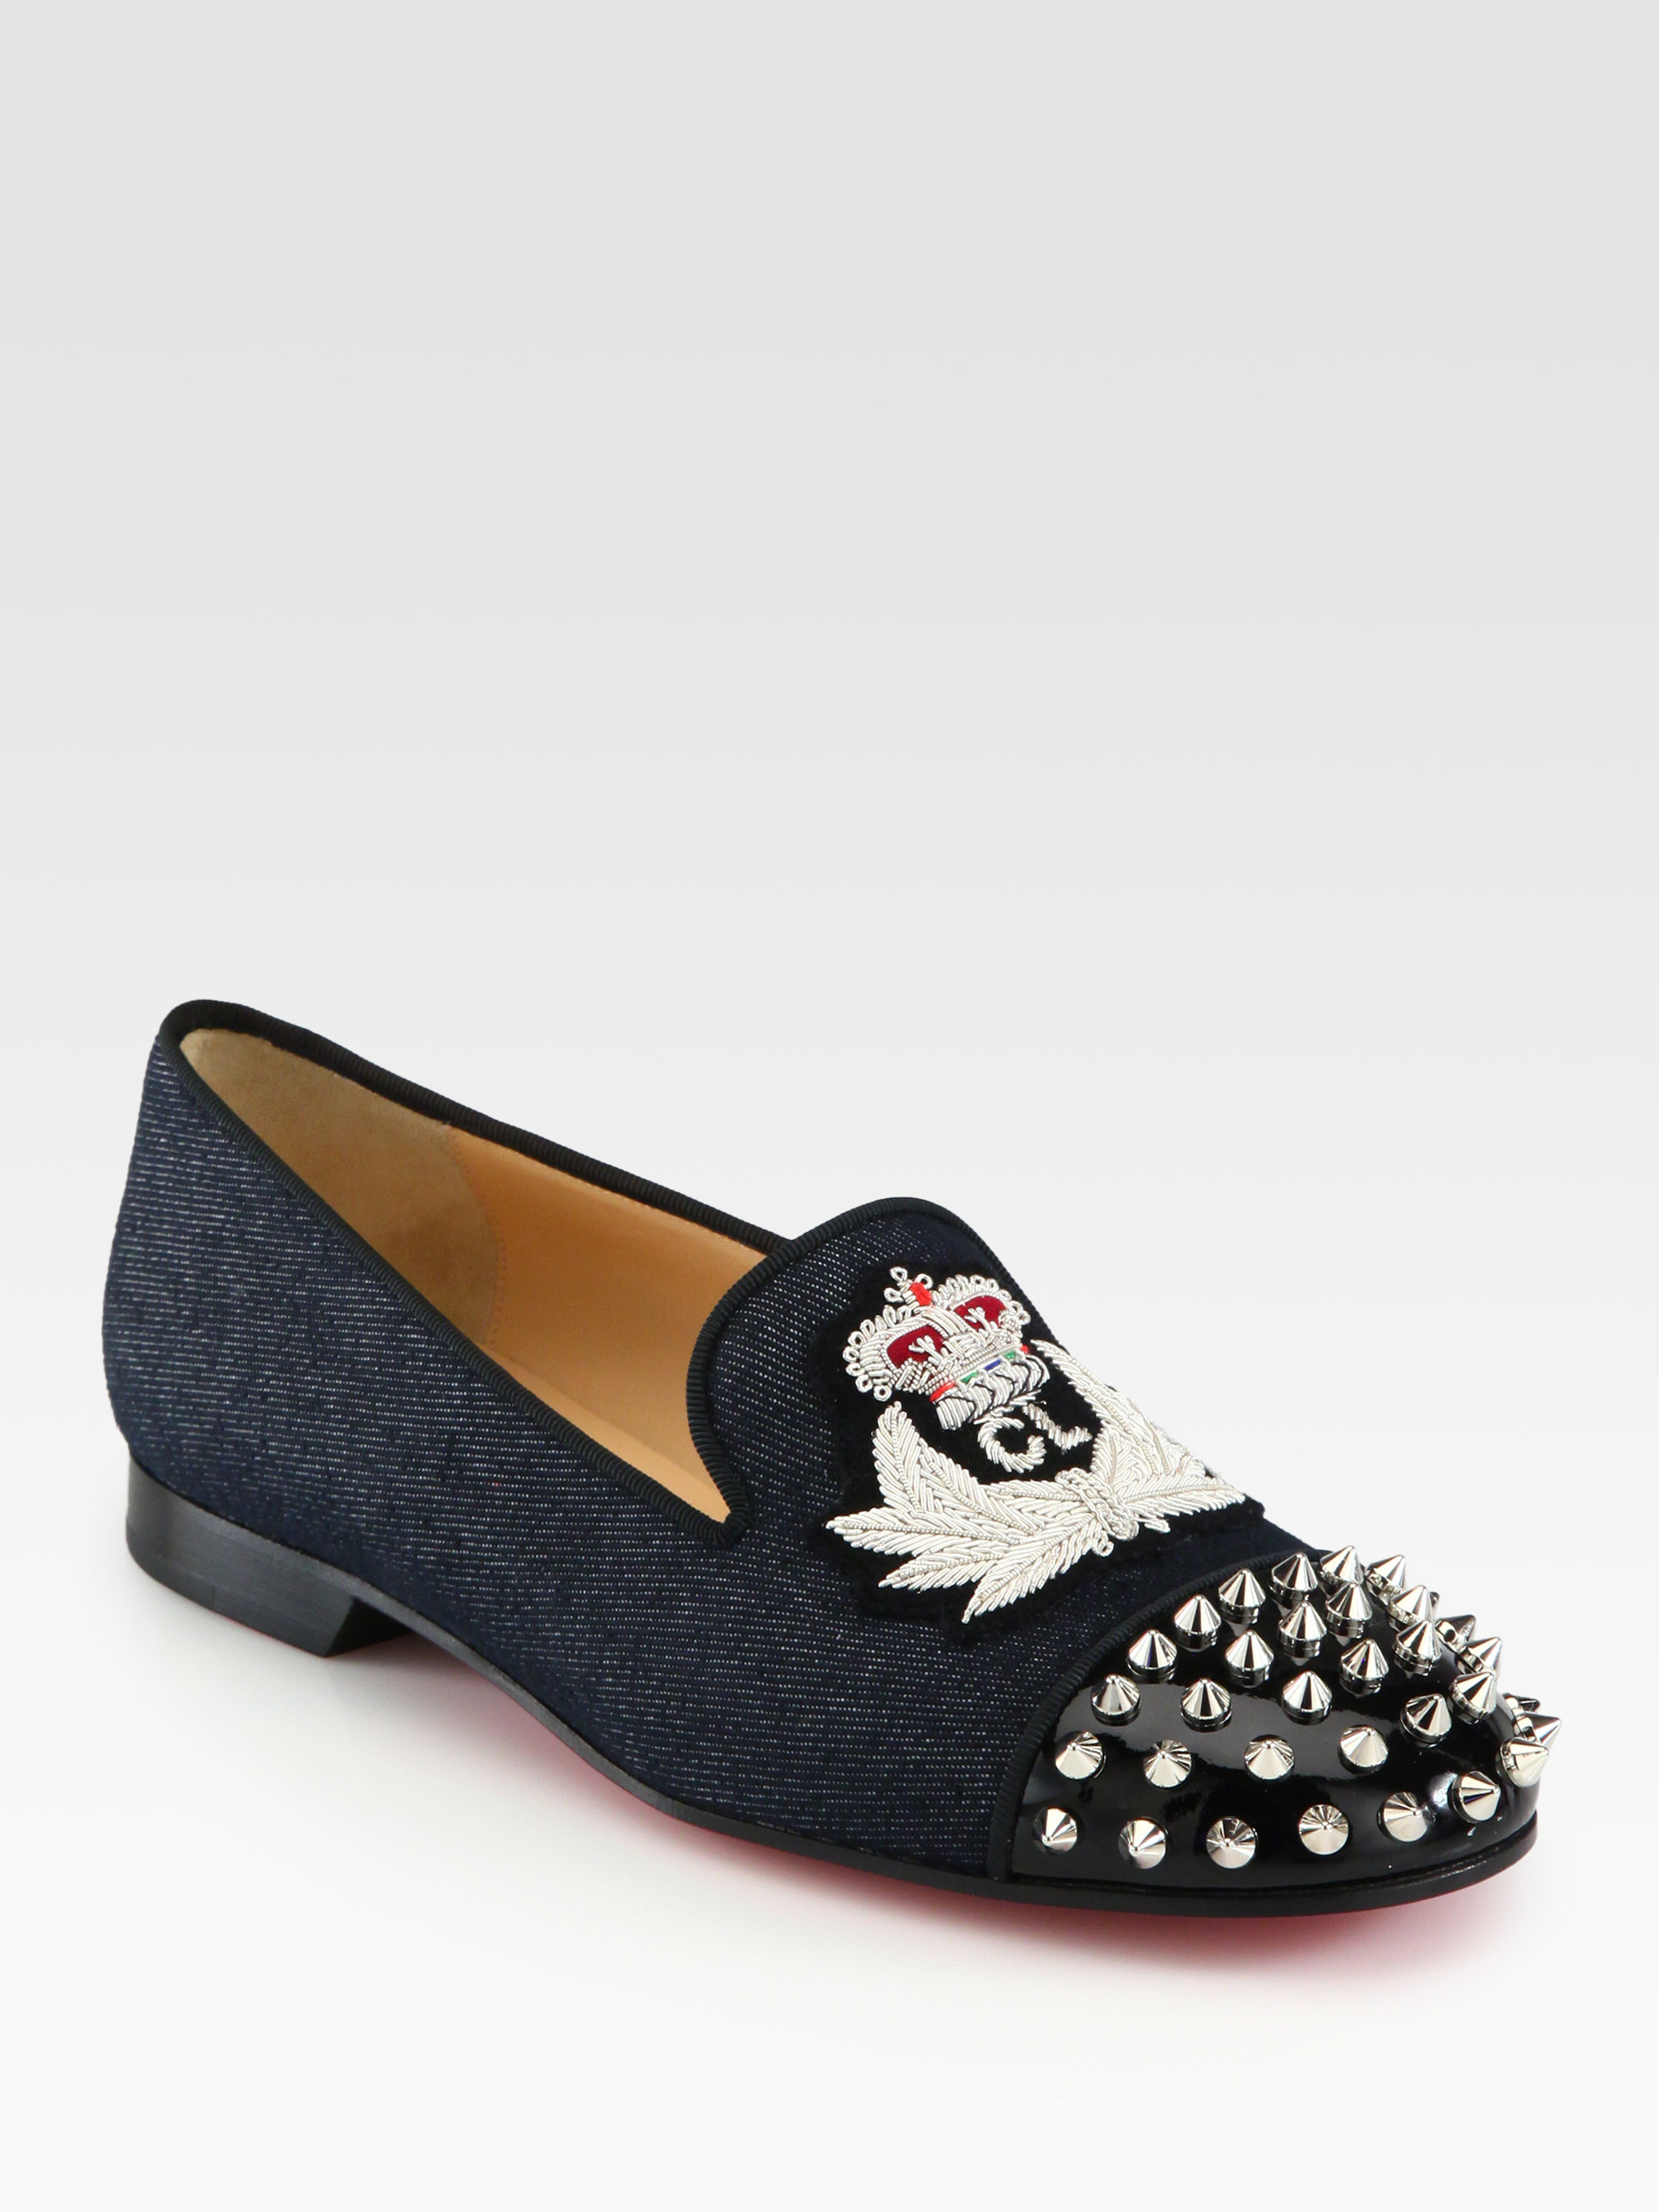 Christian louboutin Intern Spiked Denim Patent Leather Loafers in ...